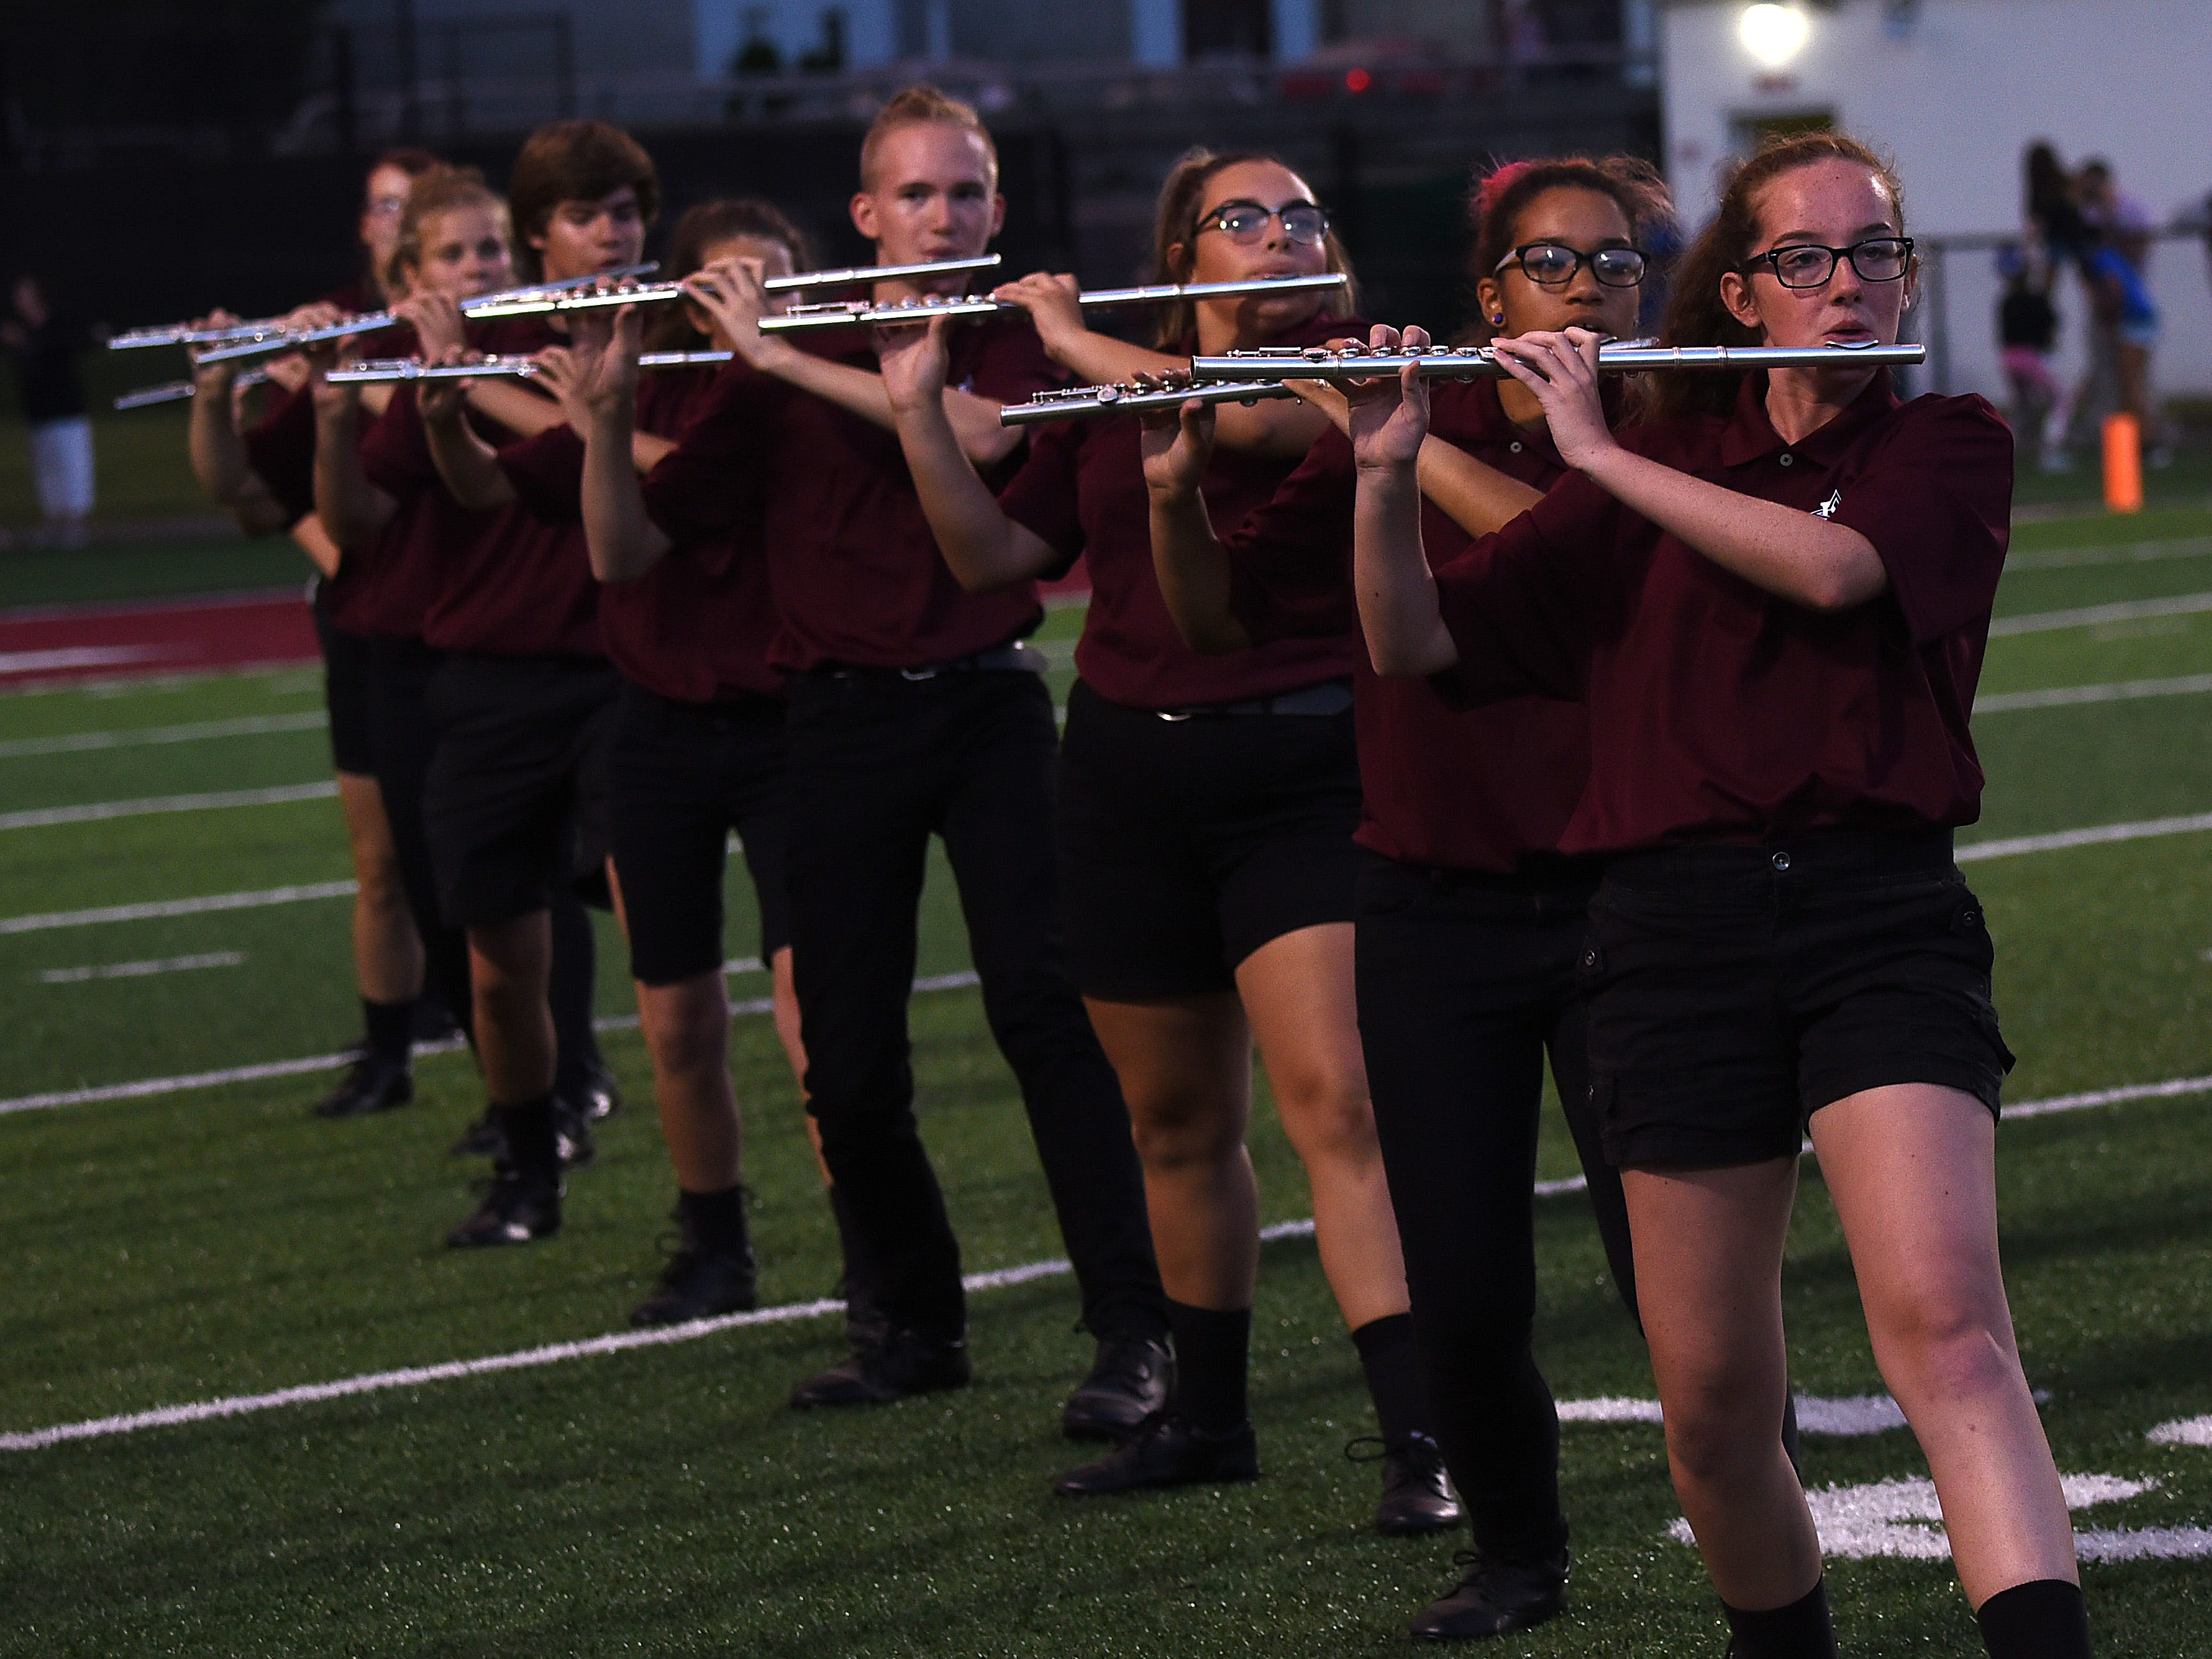 The Pride of Newark Marching Bands' flute section performs during halftime on Friday, Aug. 24, 2018.